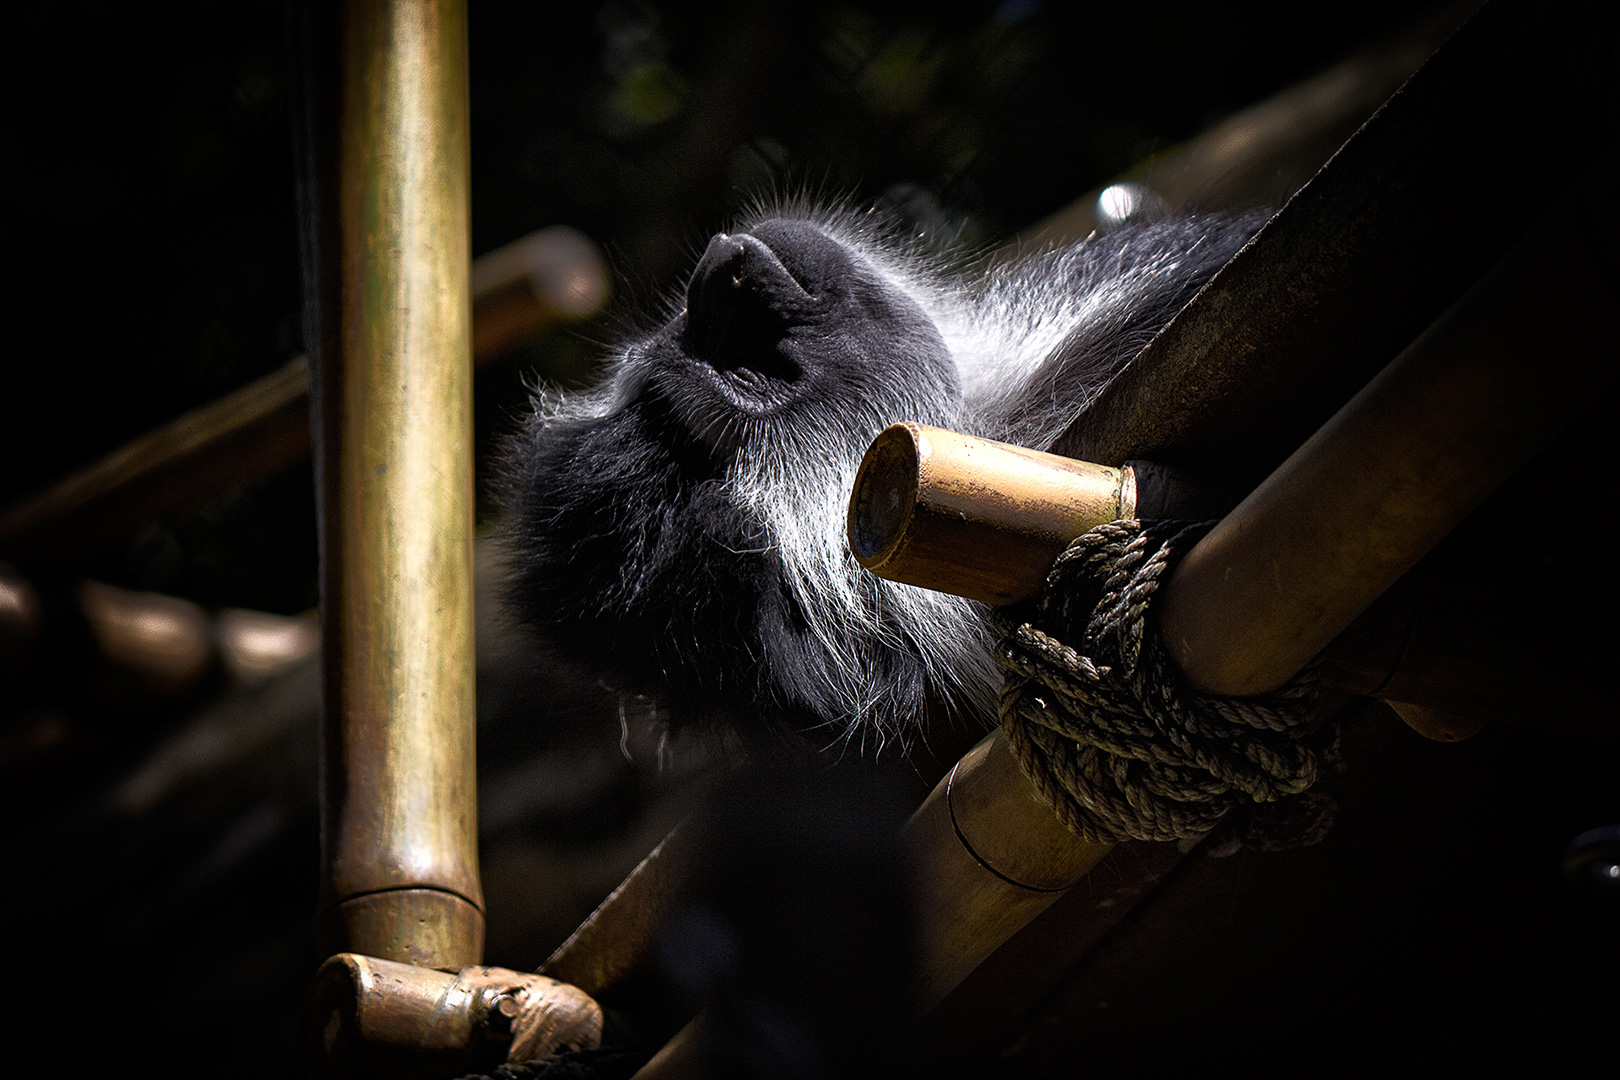 Sleping Monkey.  Disneys Animal Kingdom, Walt Disney World Resort, Orlando FloridaDisney Photography, Disney World Photography, Disneyland Photography, Disney Photos, Disney Pictures,  Disney Photography Blog, Disney Tourist Blog, Disney Event Photography